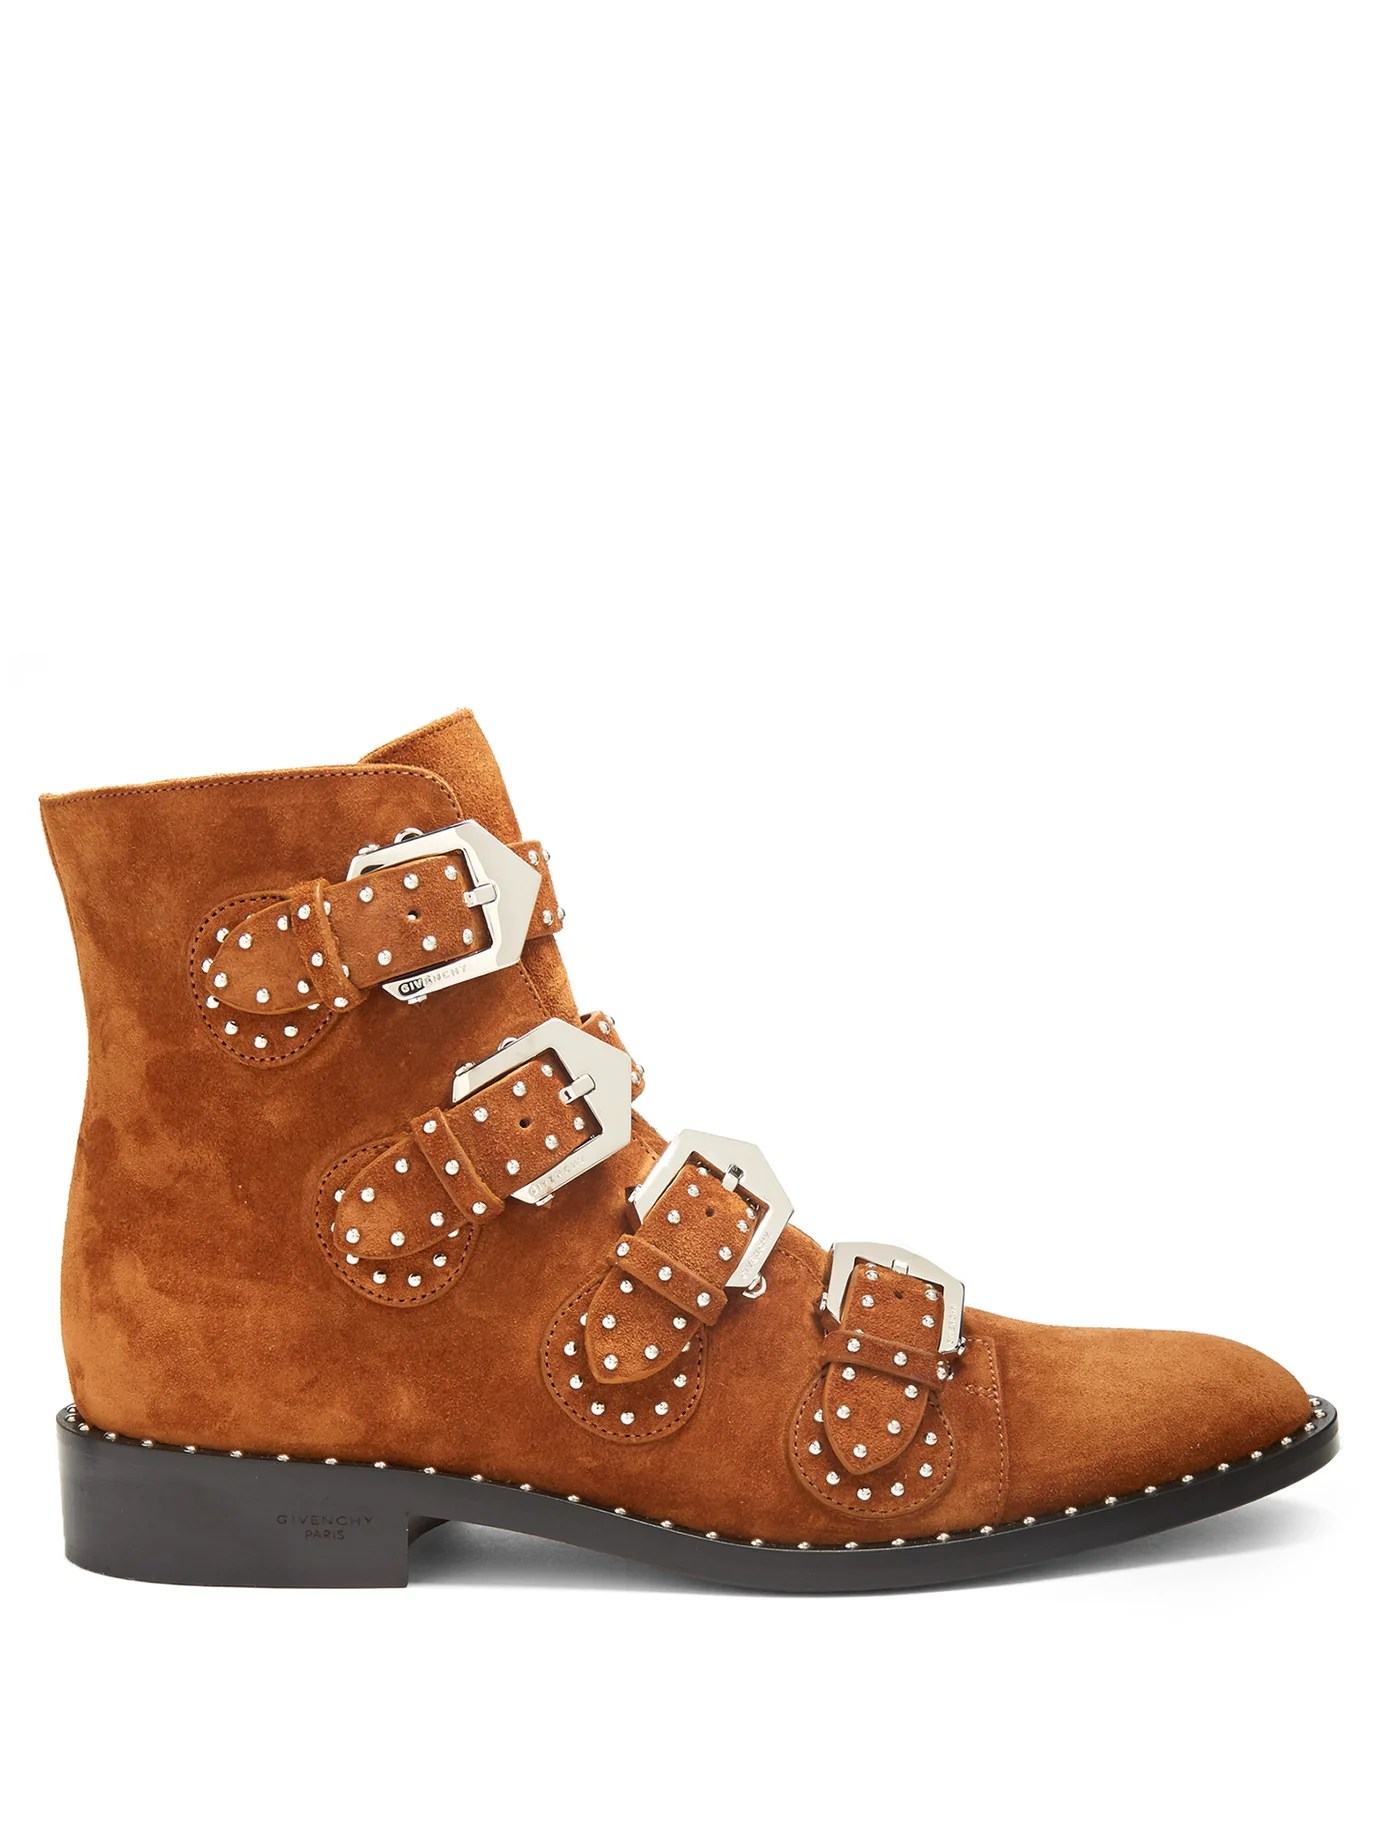 Elegant Studded Suede Ankle Boots By Givenchy Shoes Online